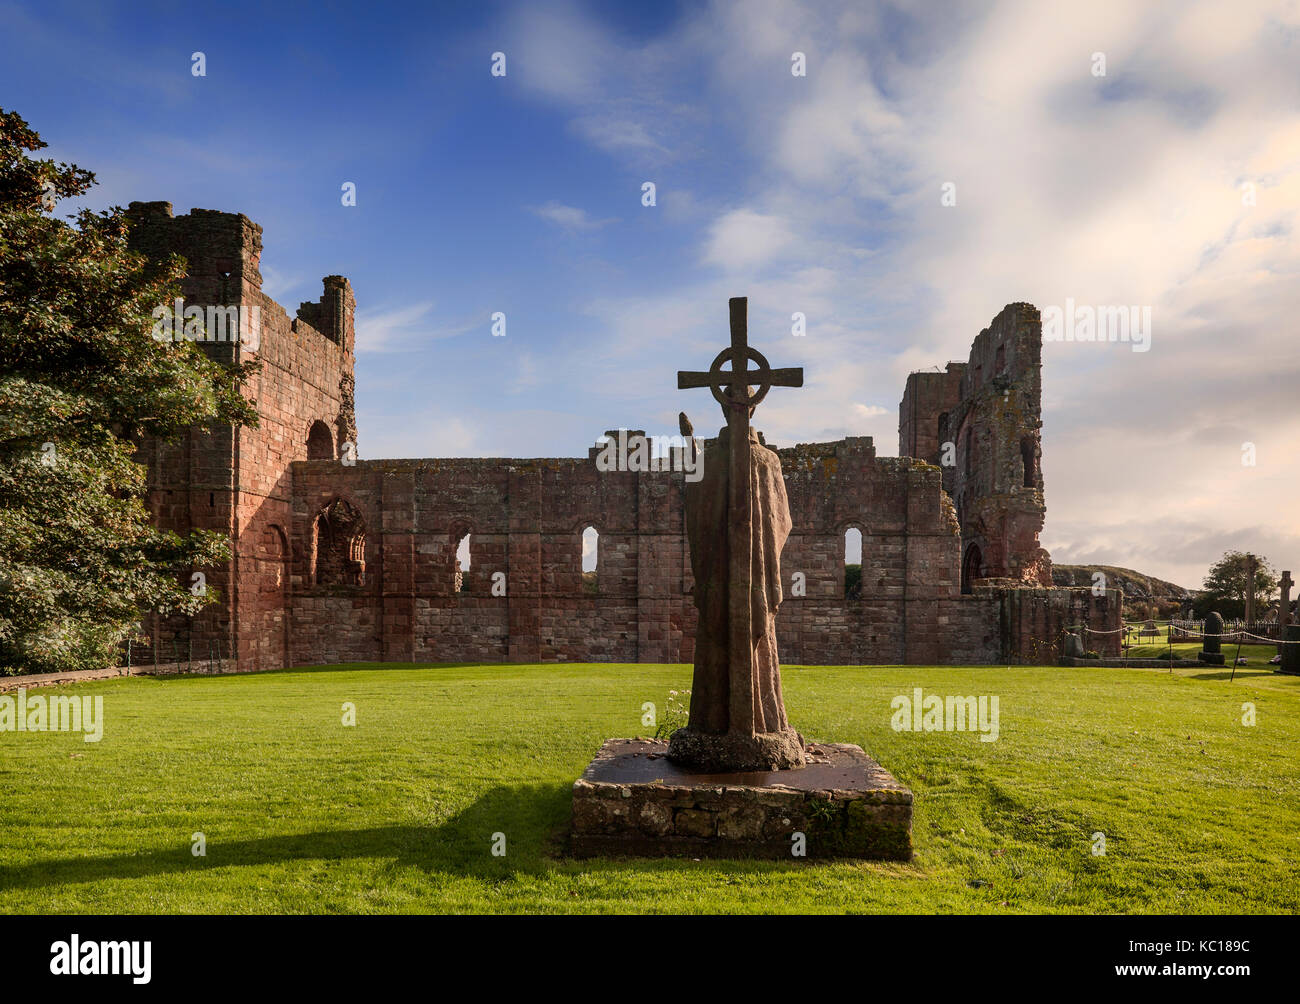 St Cuthbert's statue next the ruins of the church, built about 1150, on the spot where his body was buried. - Stock Image